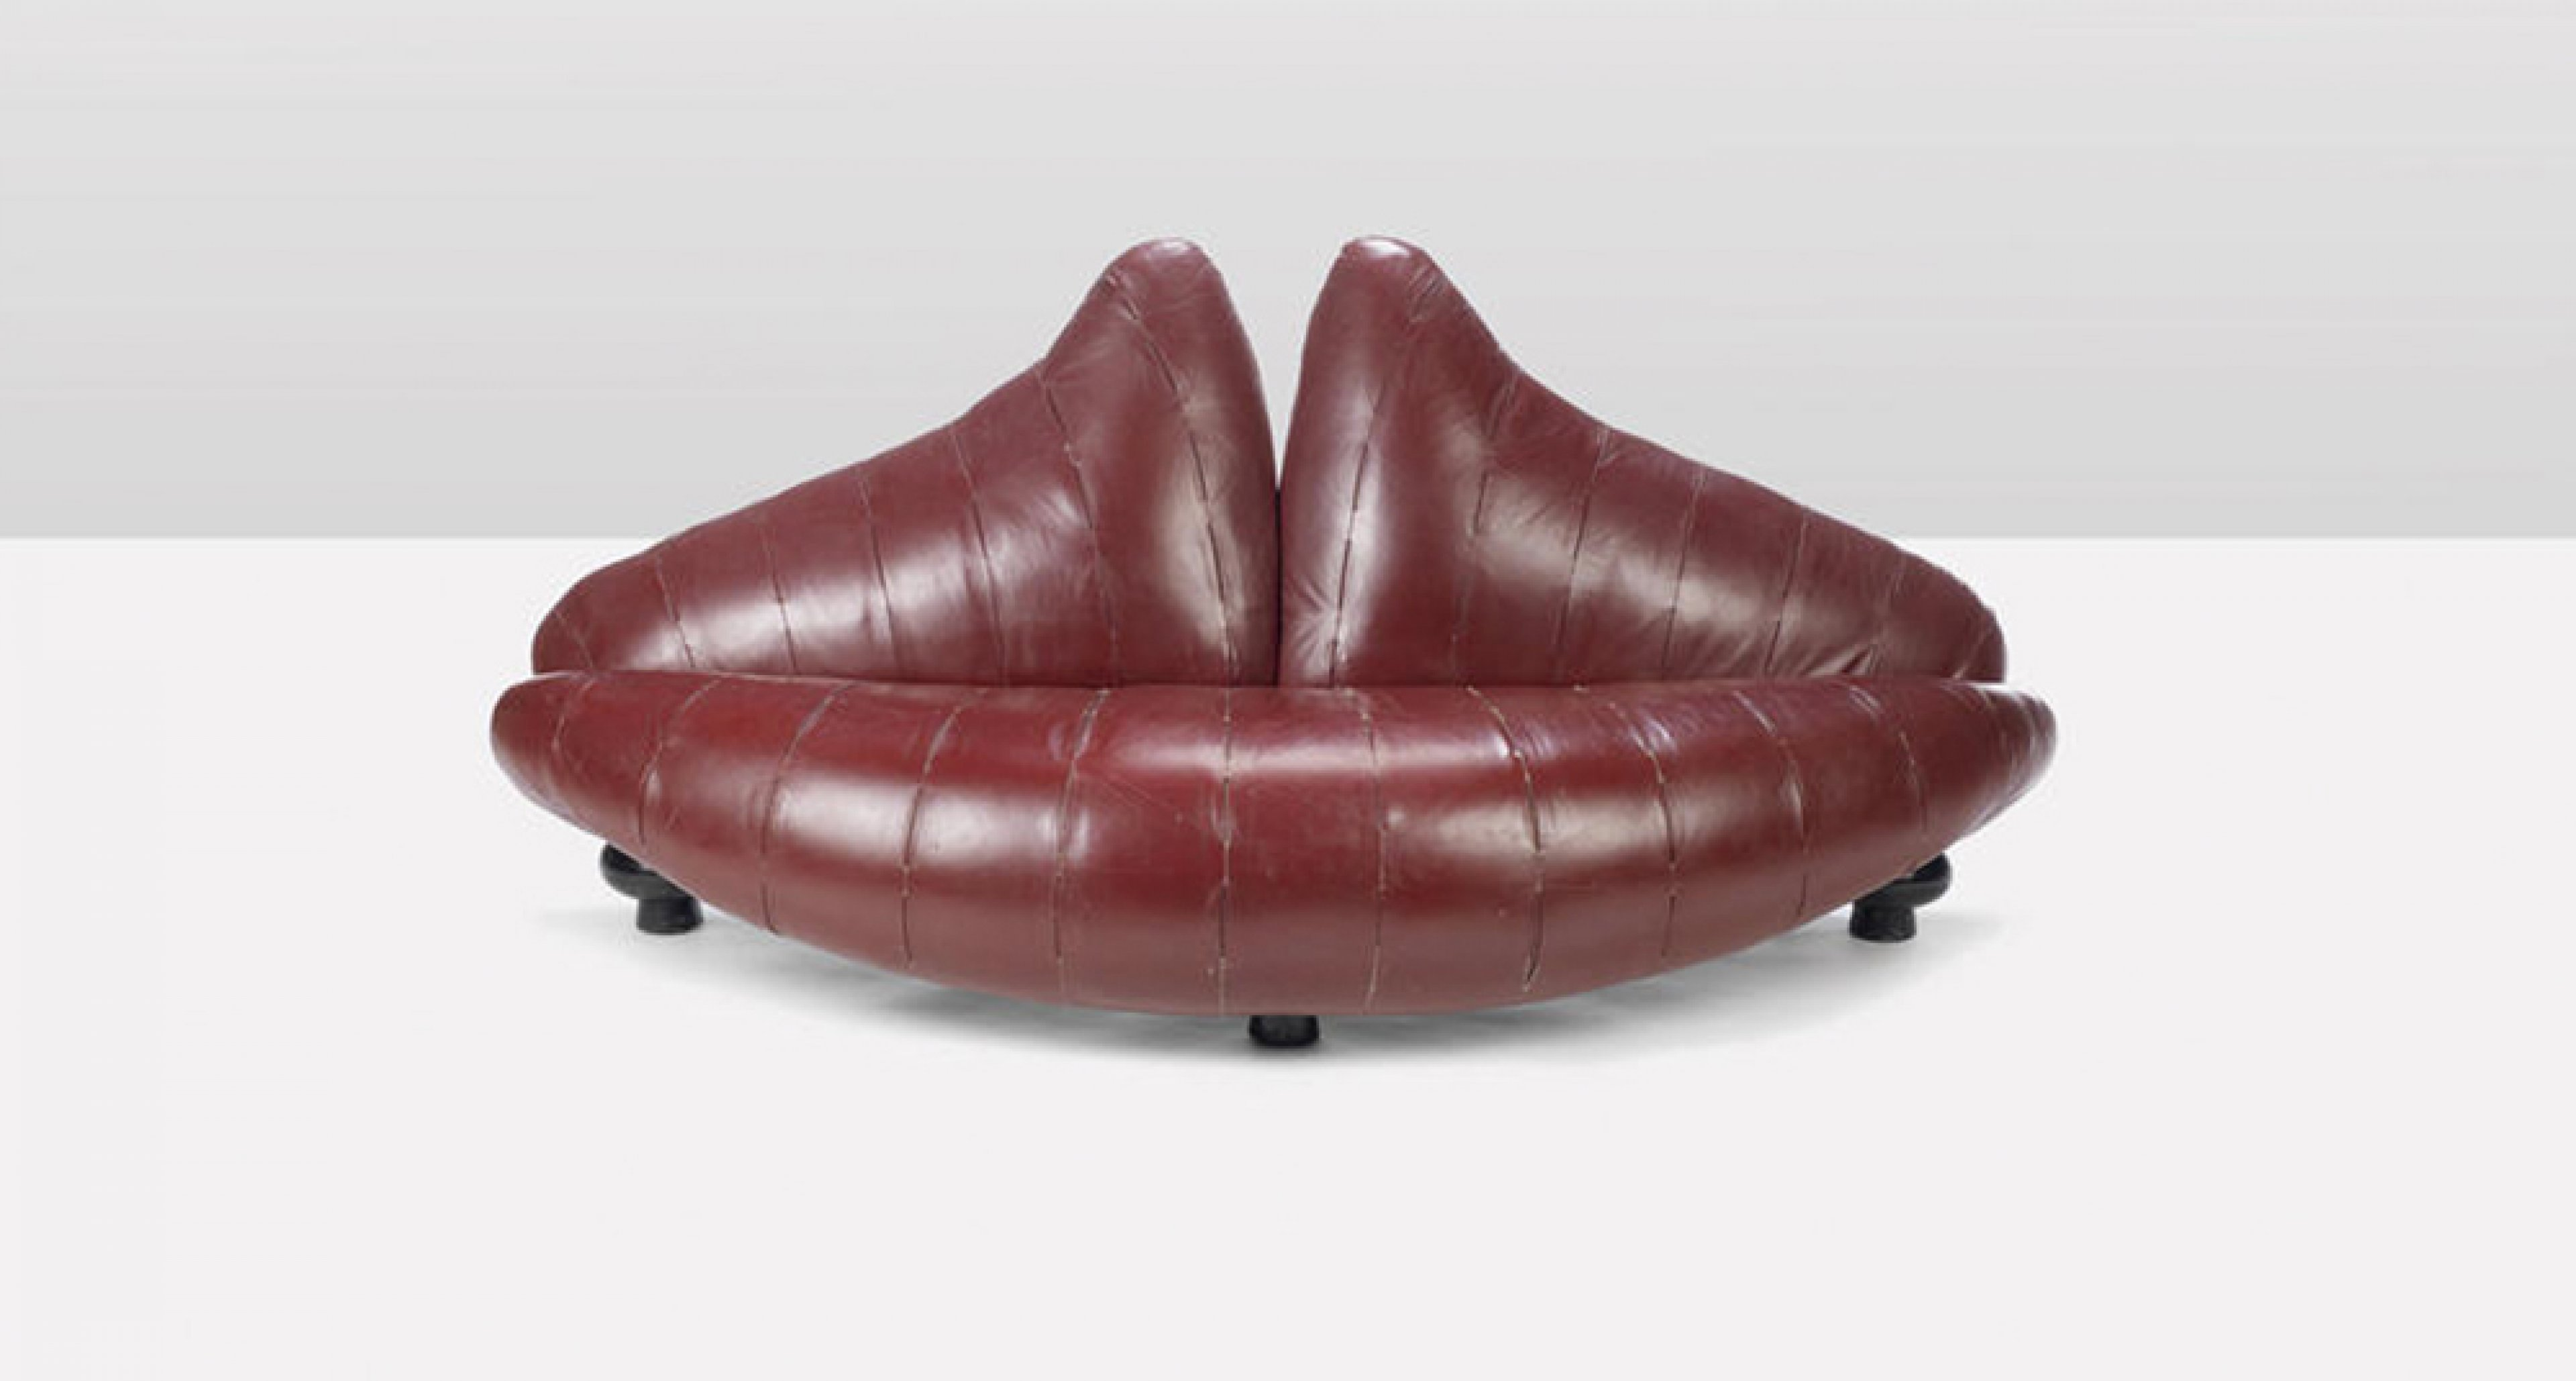 Nigel Coates, Lips Sofa designed and executed in 1988 for the interior of Katherine Hamnett's Sloane Street Store, estimate £1,500 - 2,000.